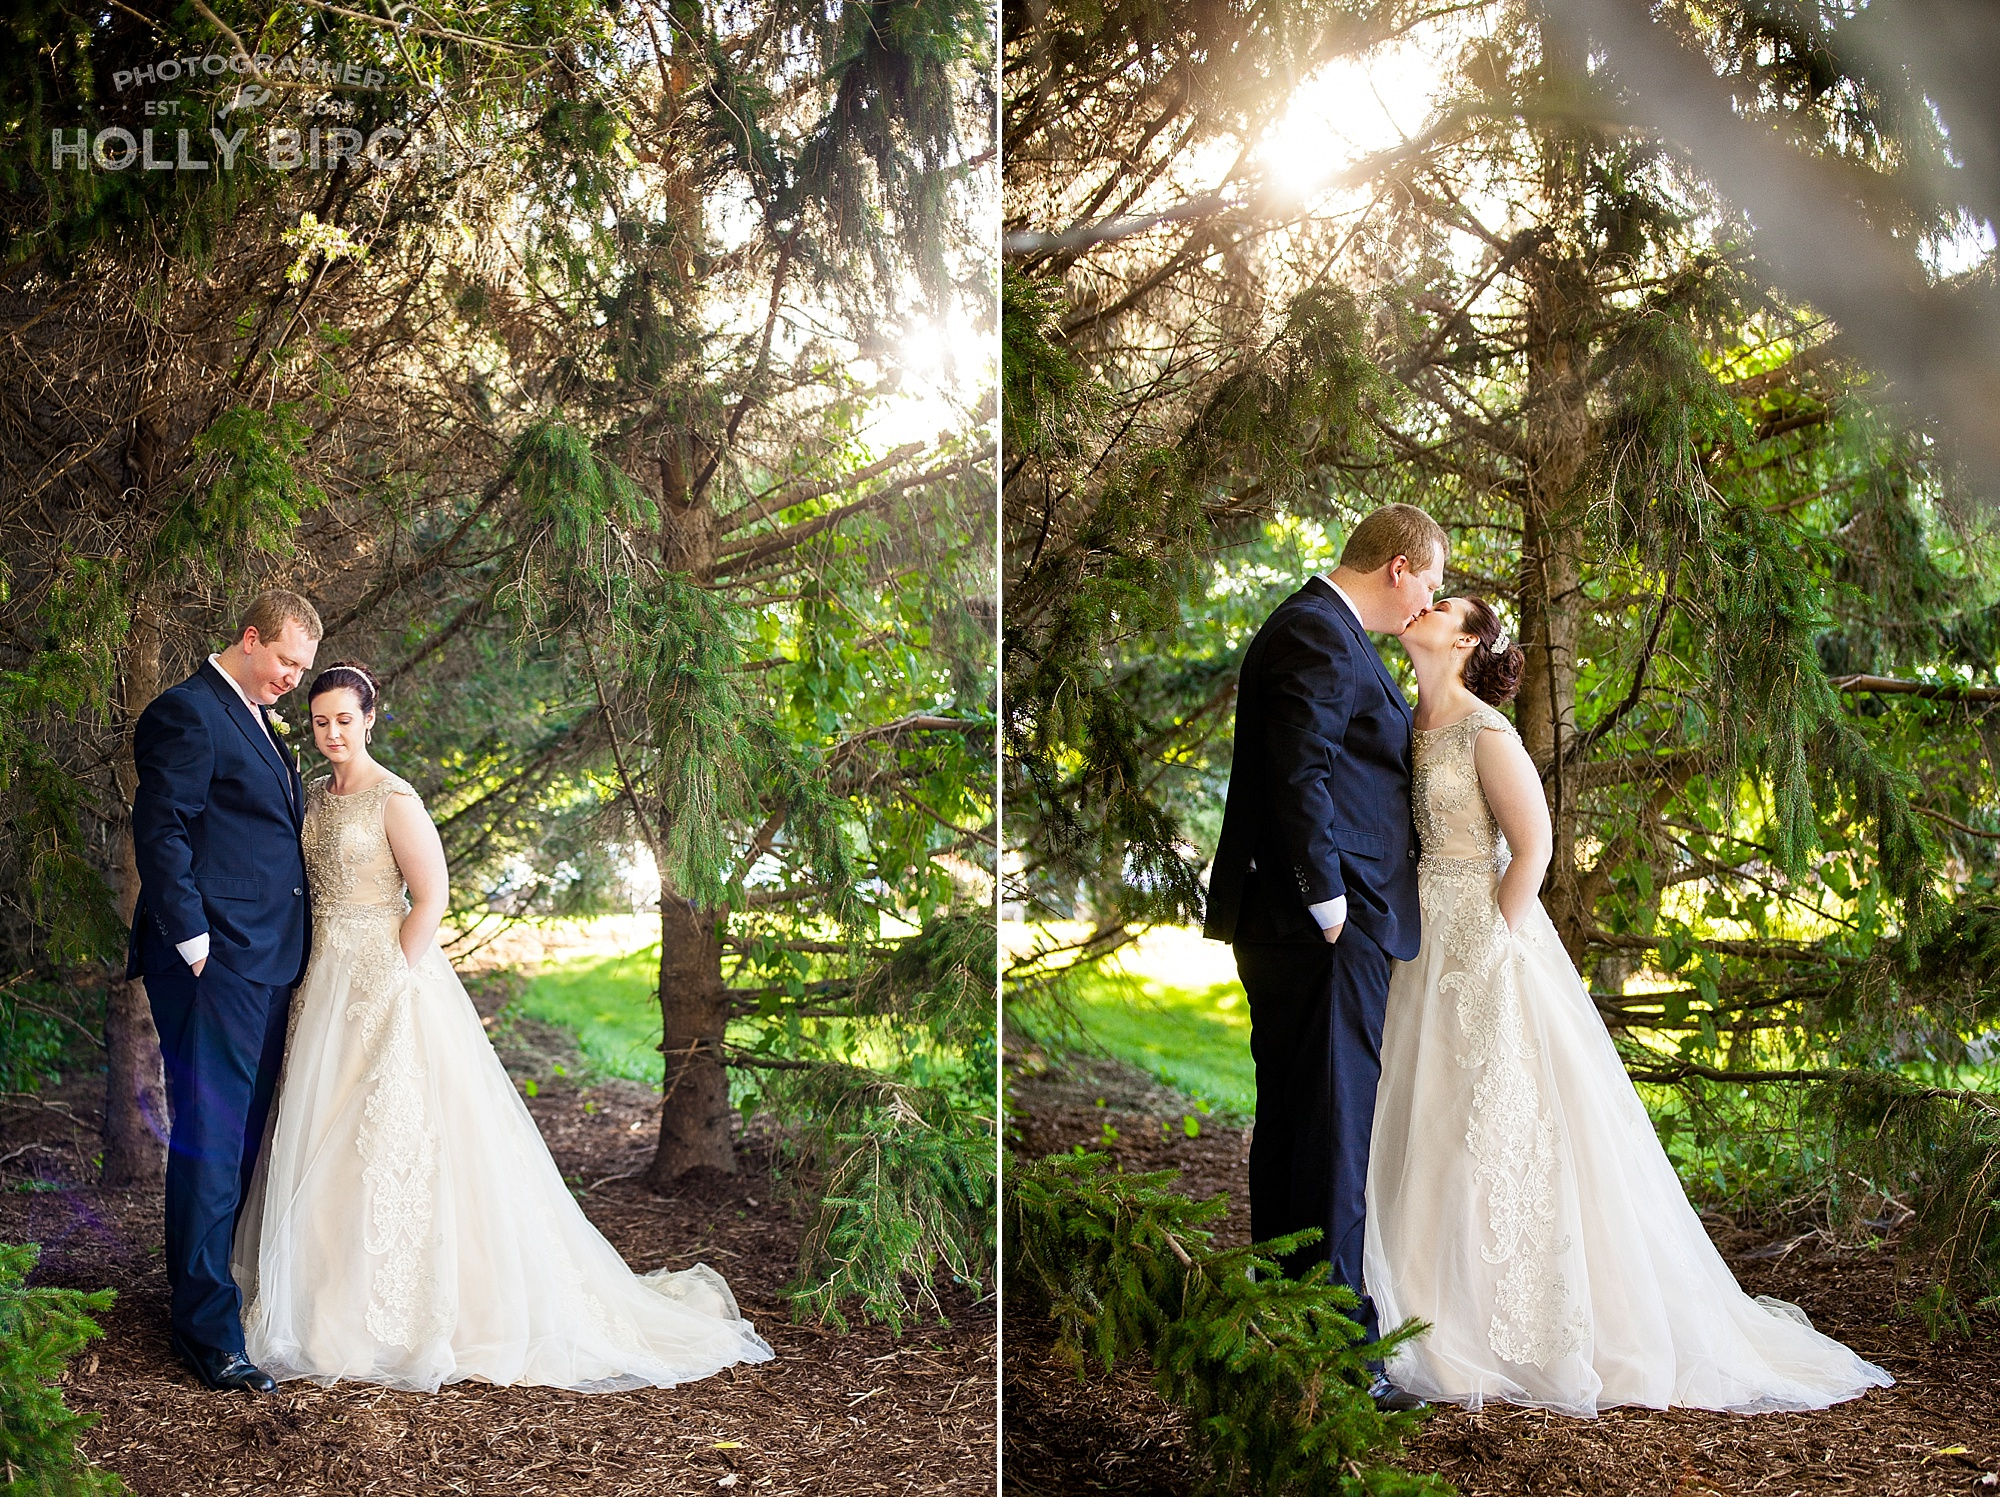 sunlight through trees wedding photo